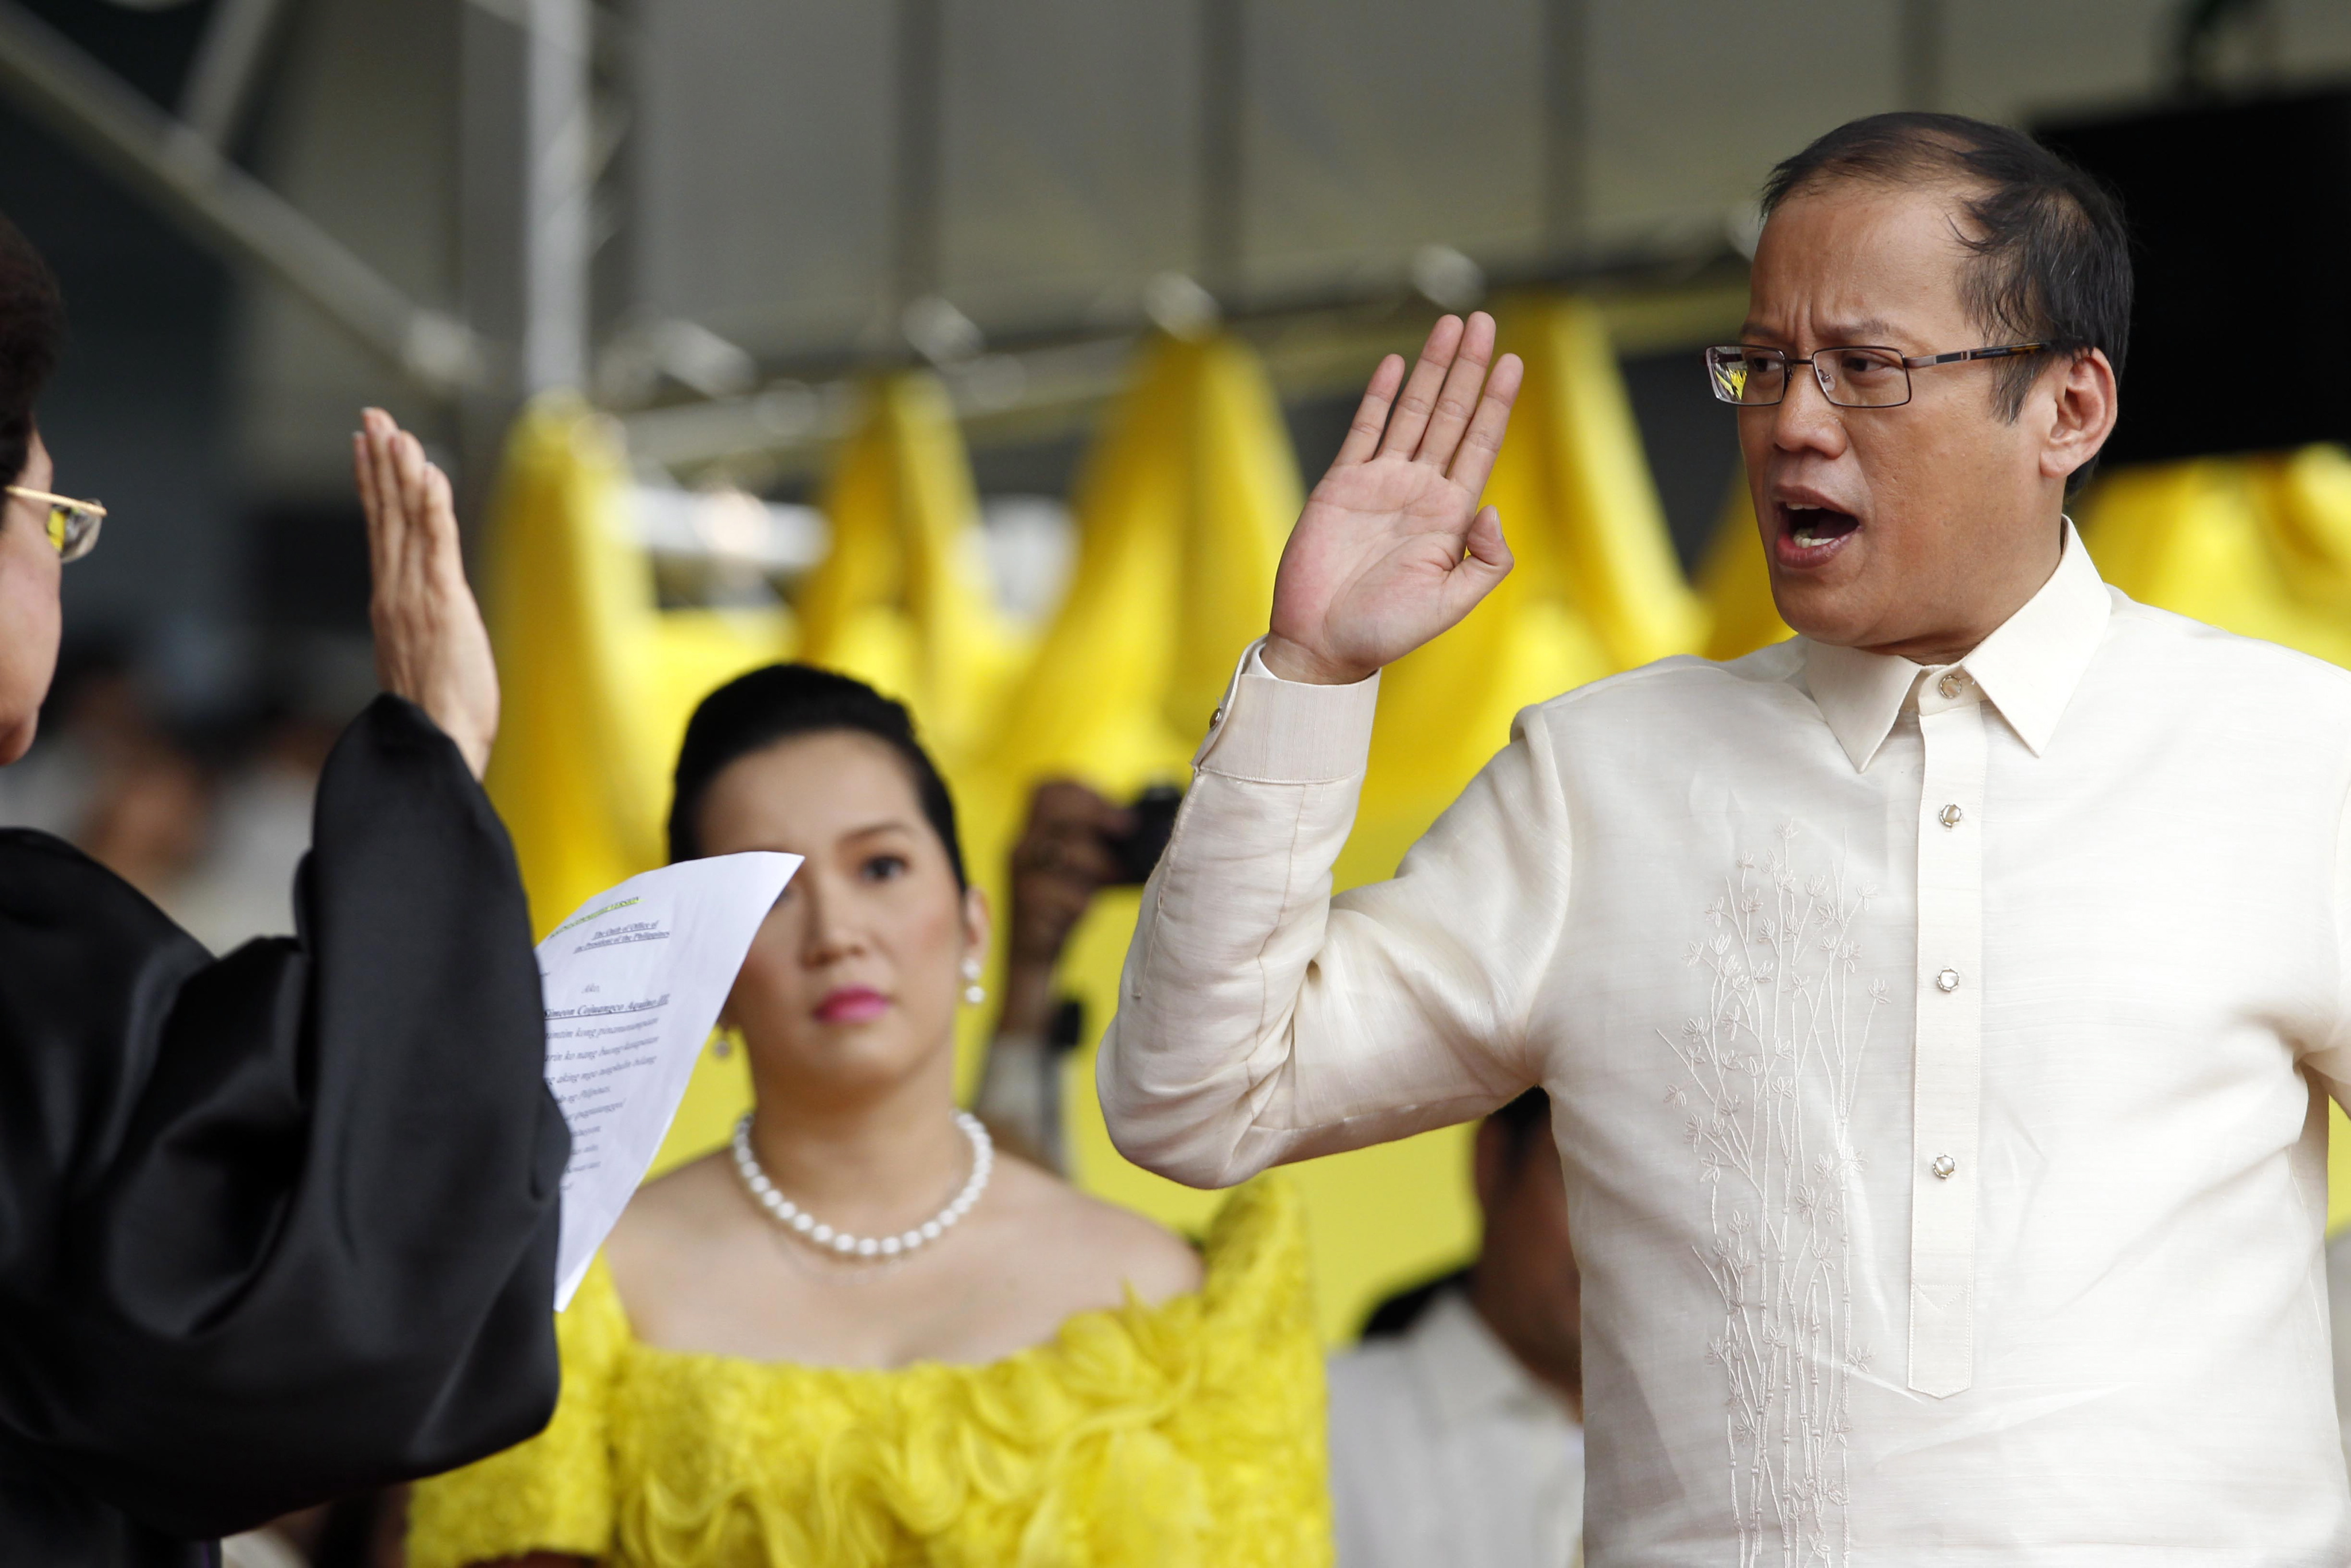 leadership style of president noynoy aquino It may be debatable but rodrigo duterte's spectacular win can be summed up as the country's clamor for true leadership in government the lack of lead yet again, noynoy aquino failed to provide tangible leadership as for the rest of duterte's leadership style is that of the authoritative leader he can.